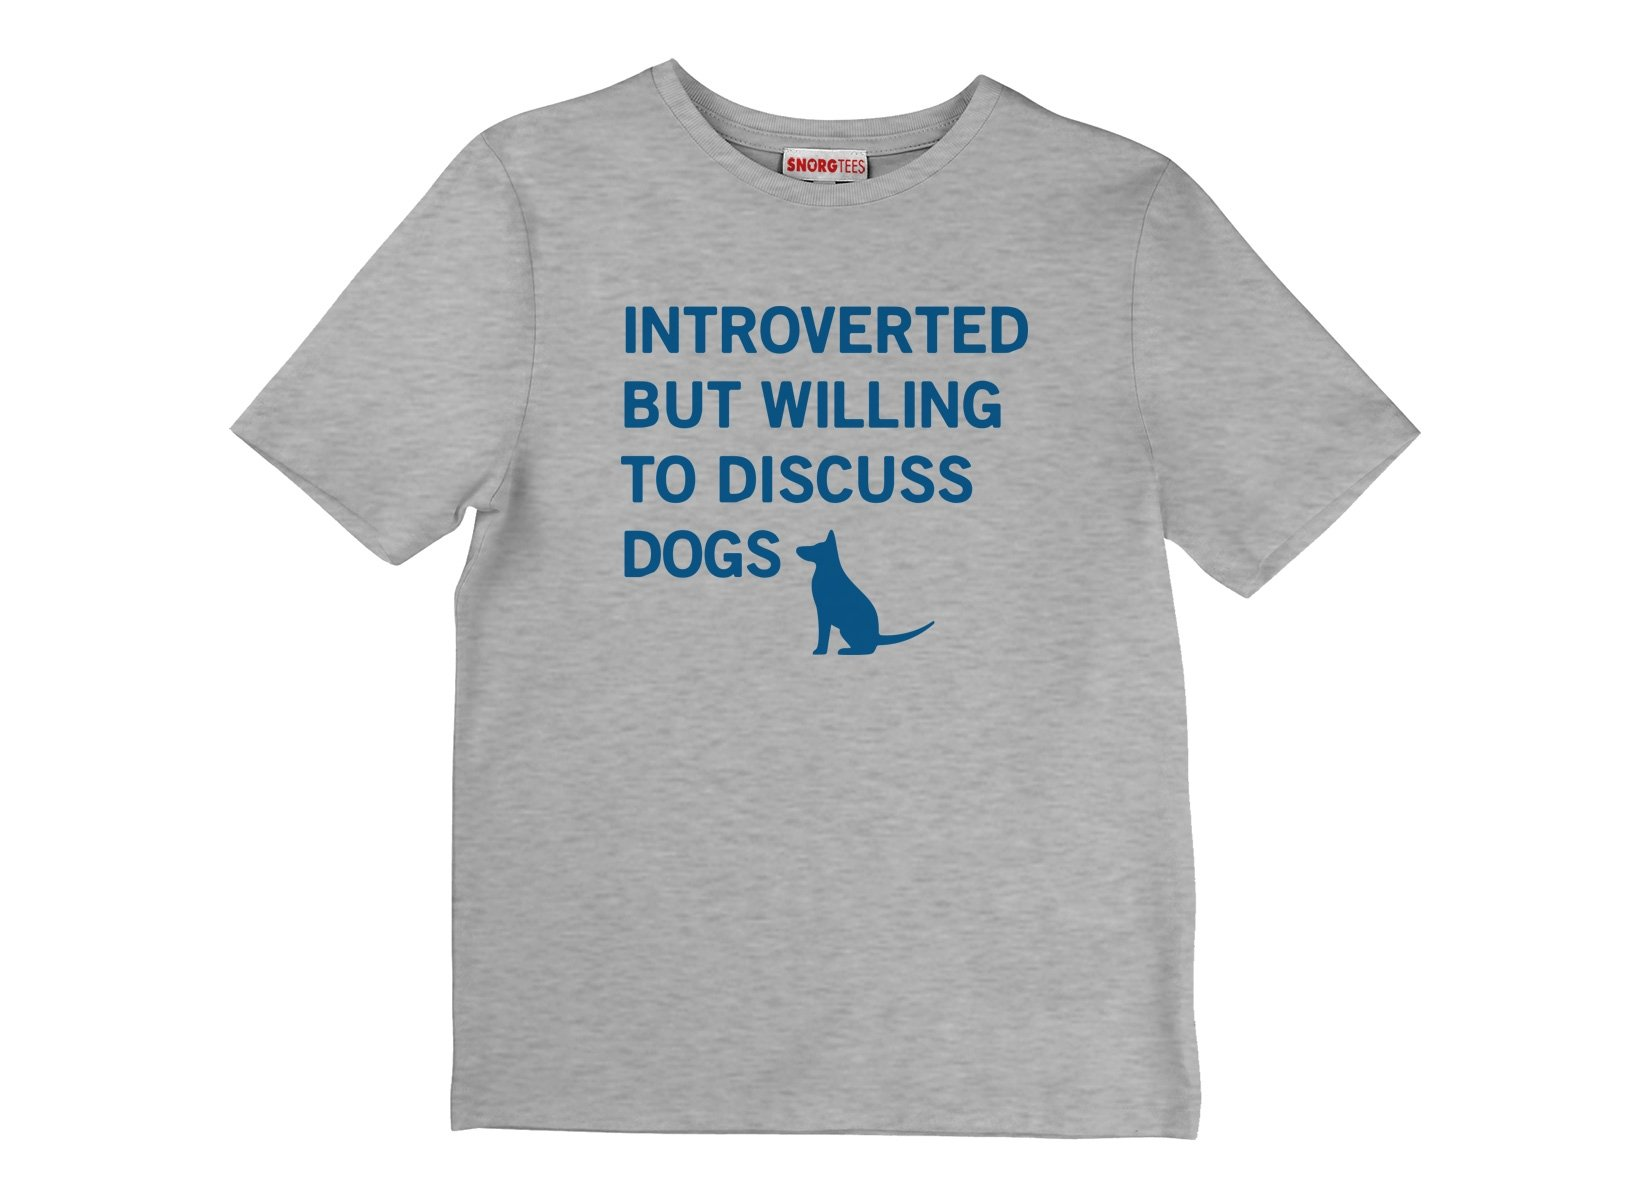 Introverted But Willing To Discuss Dogs on Kids T-Shirt